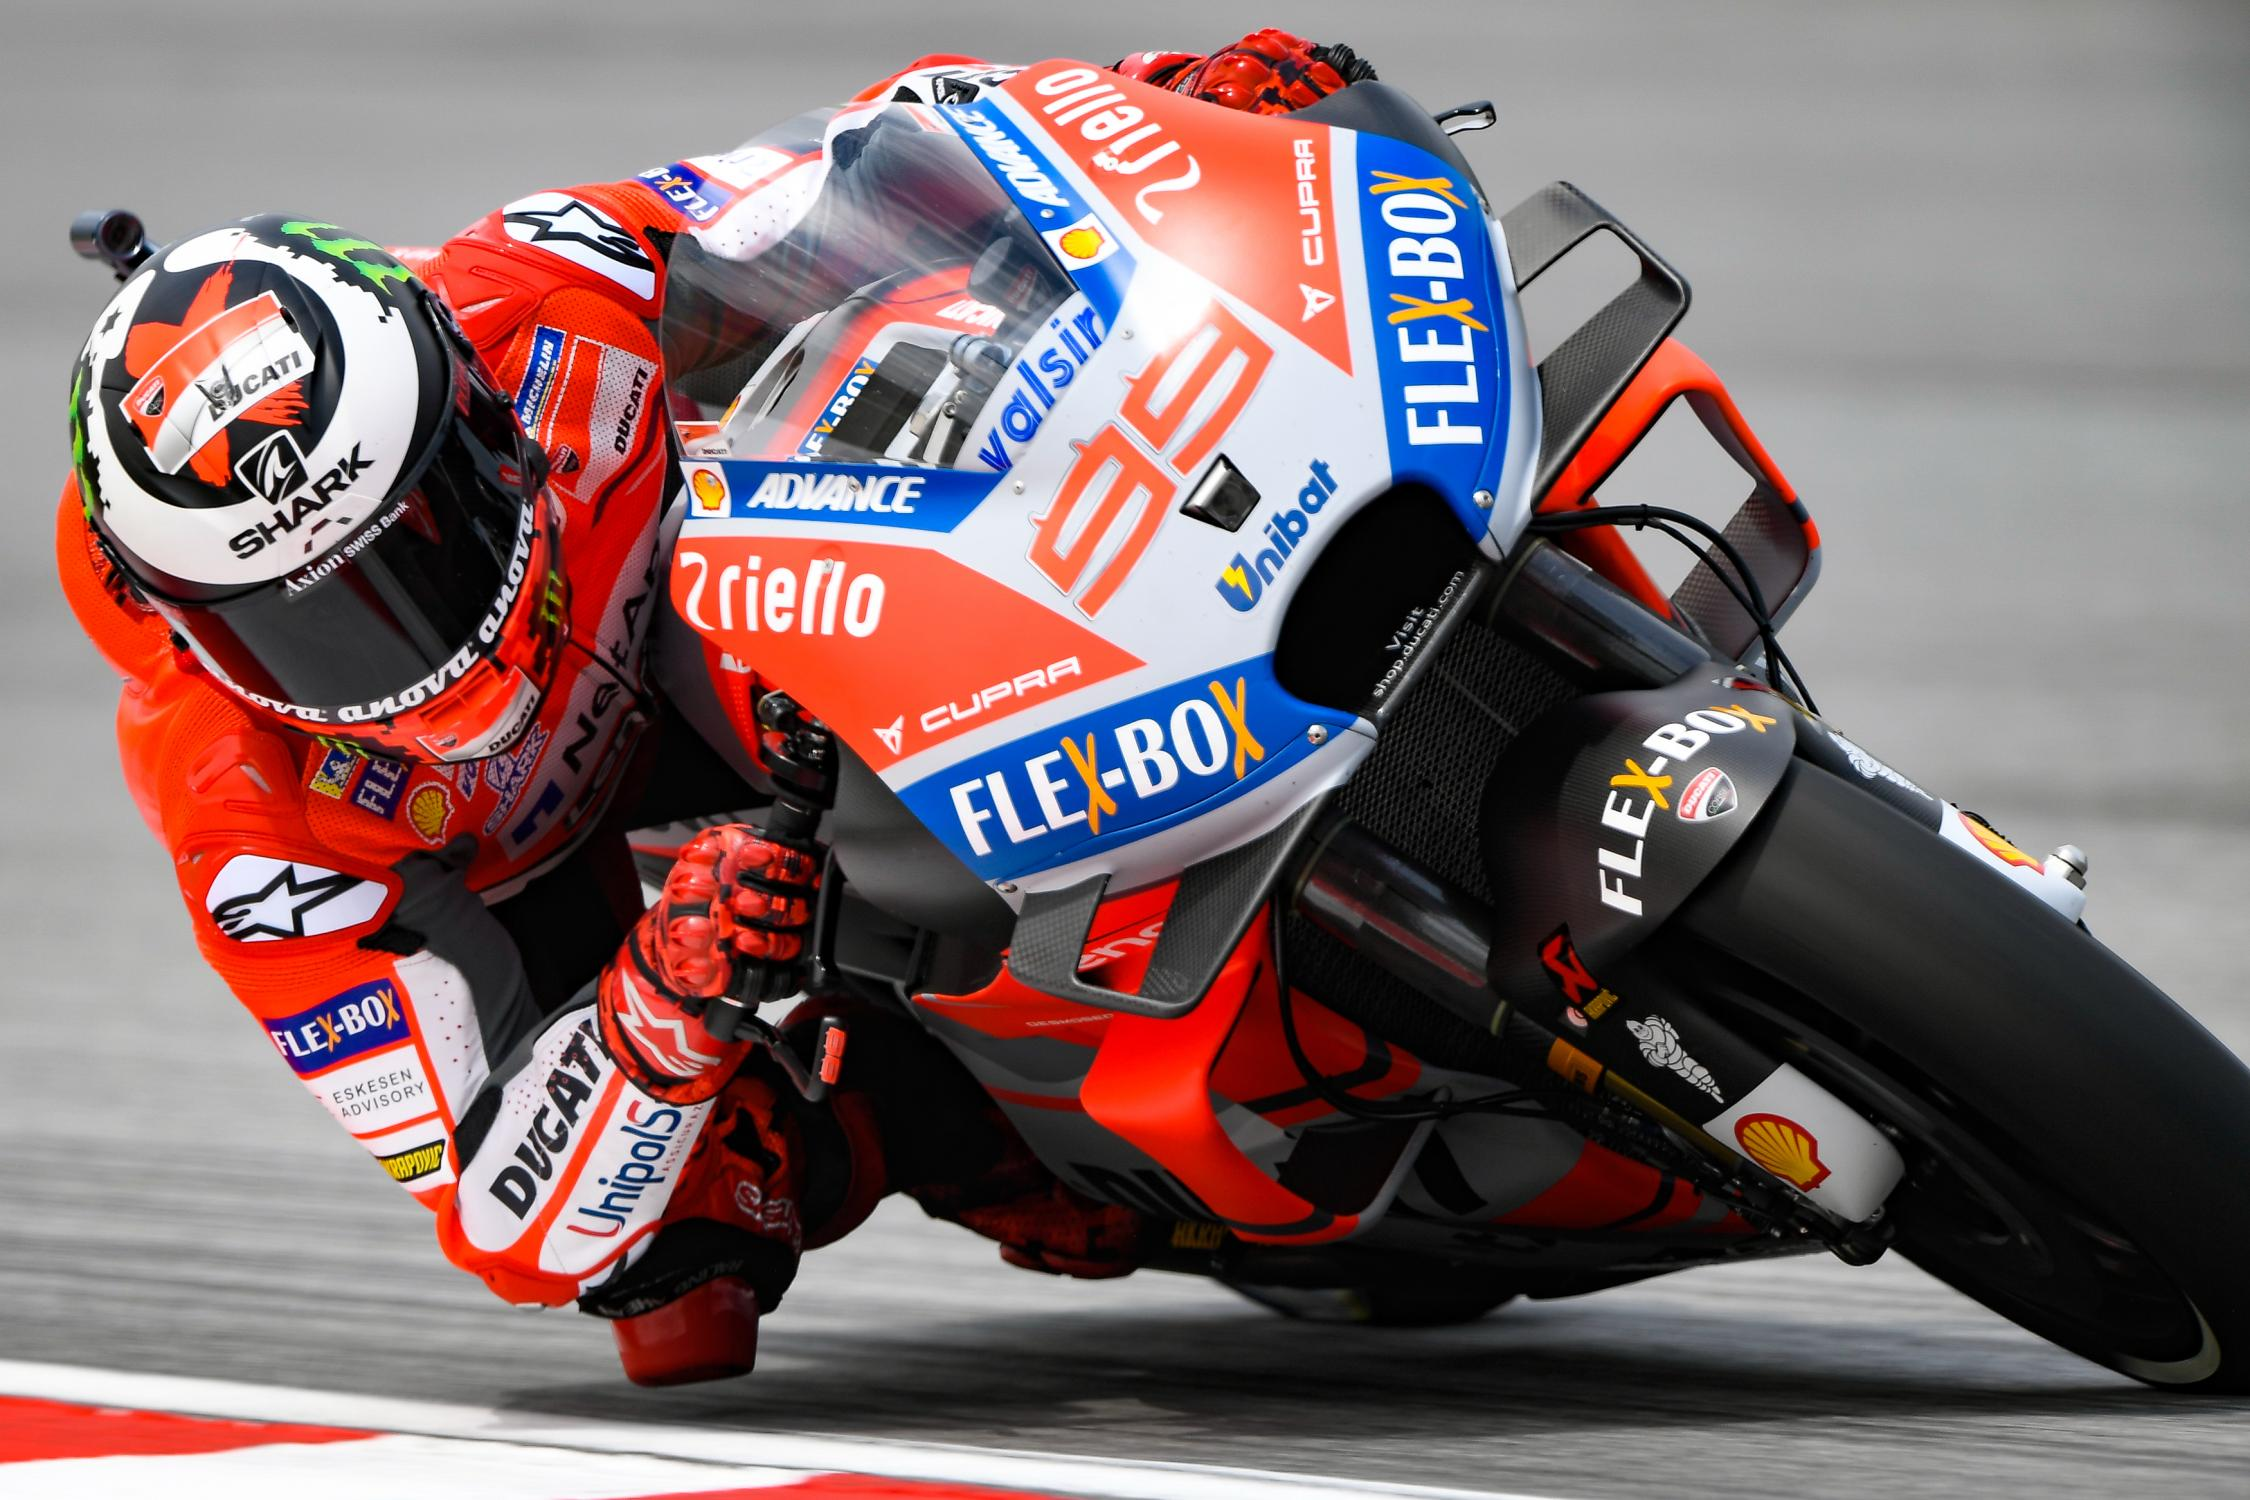 Jorge Lorenzo on Friday